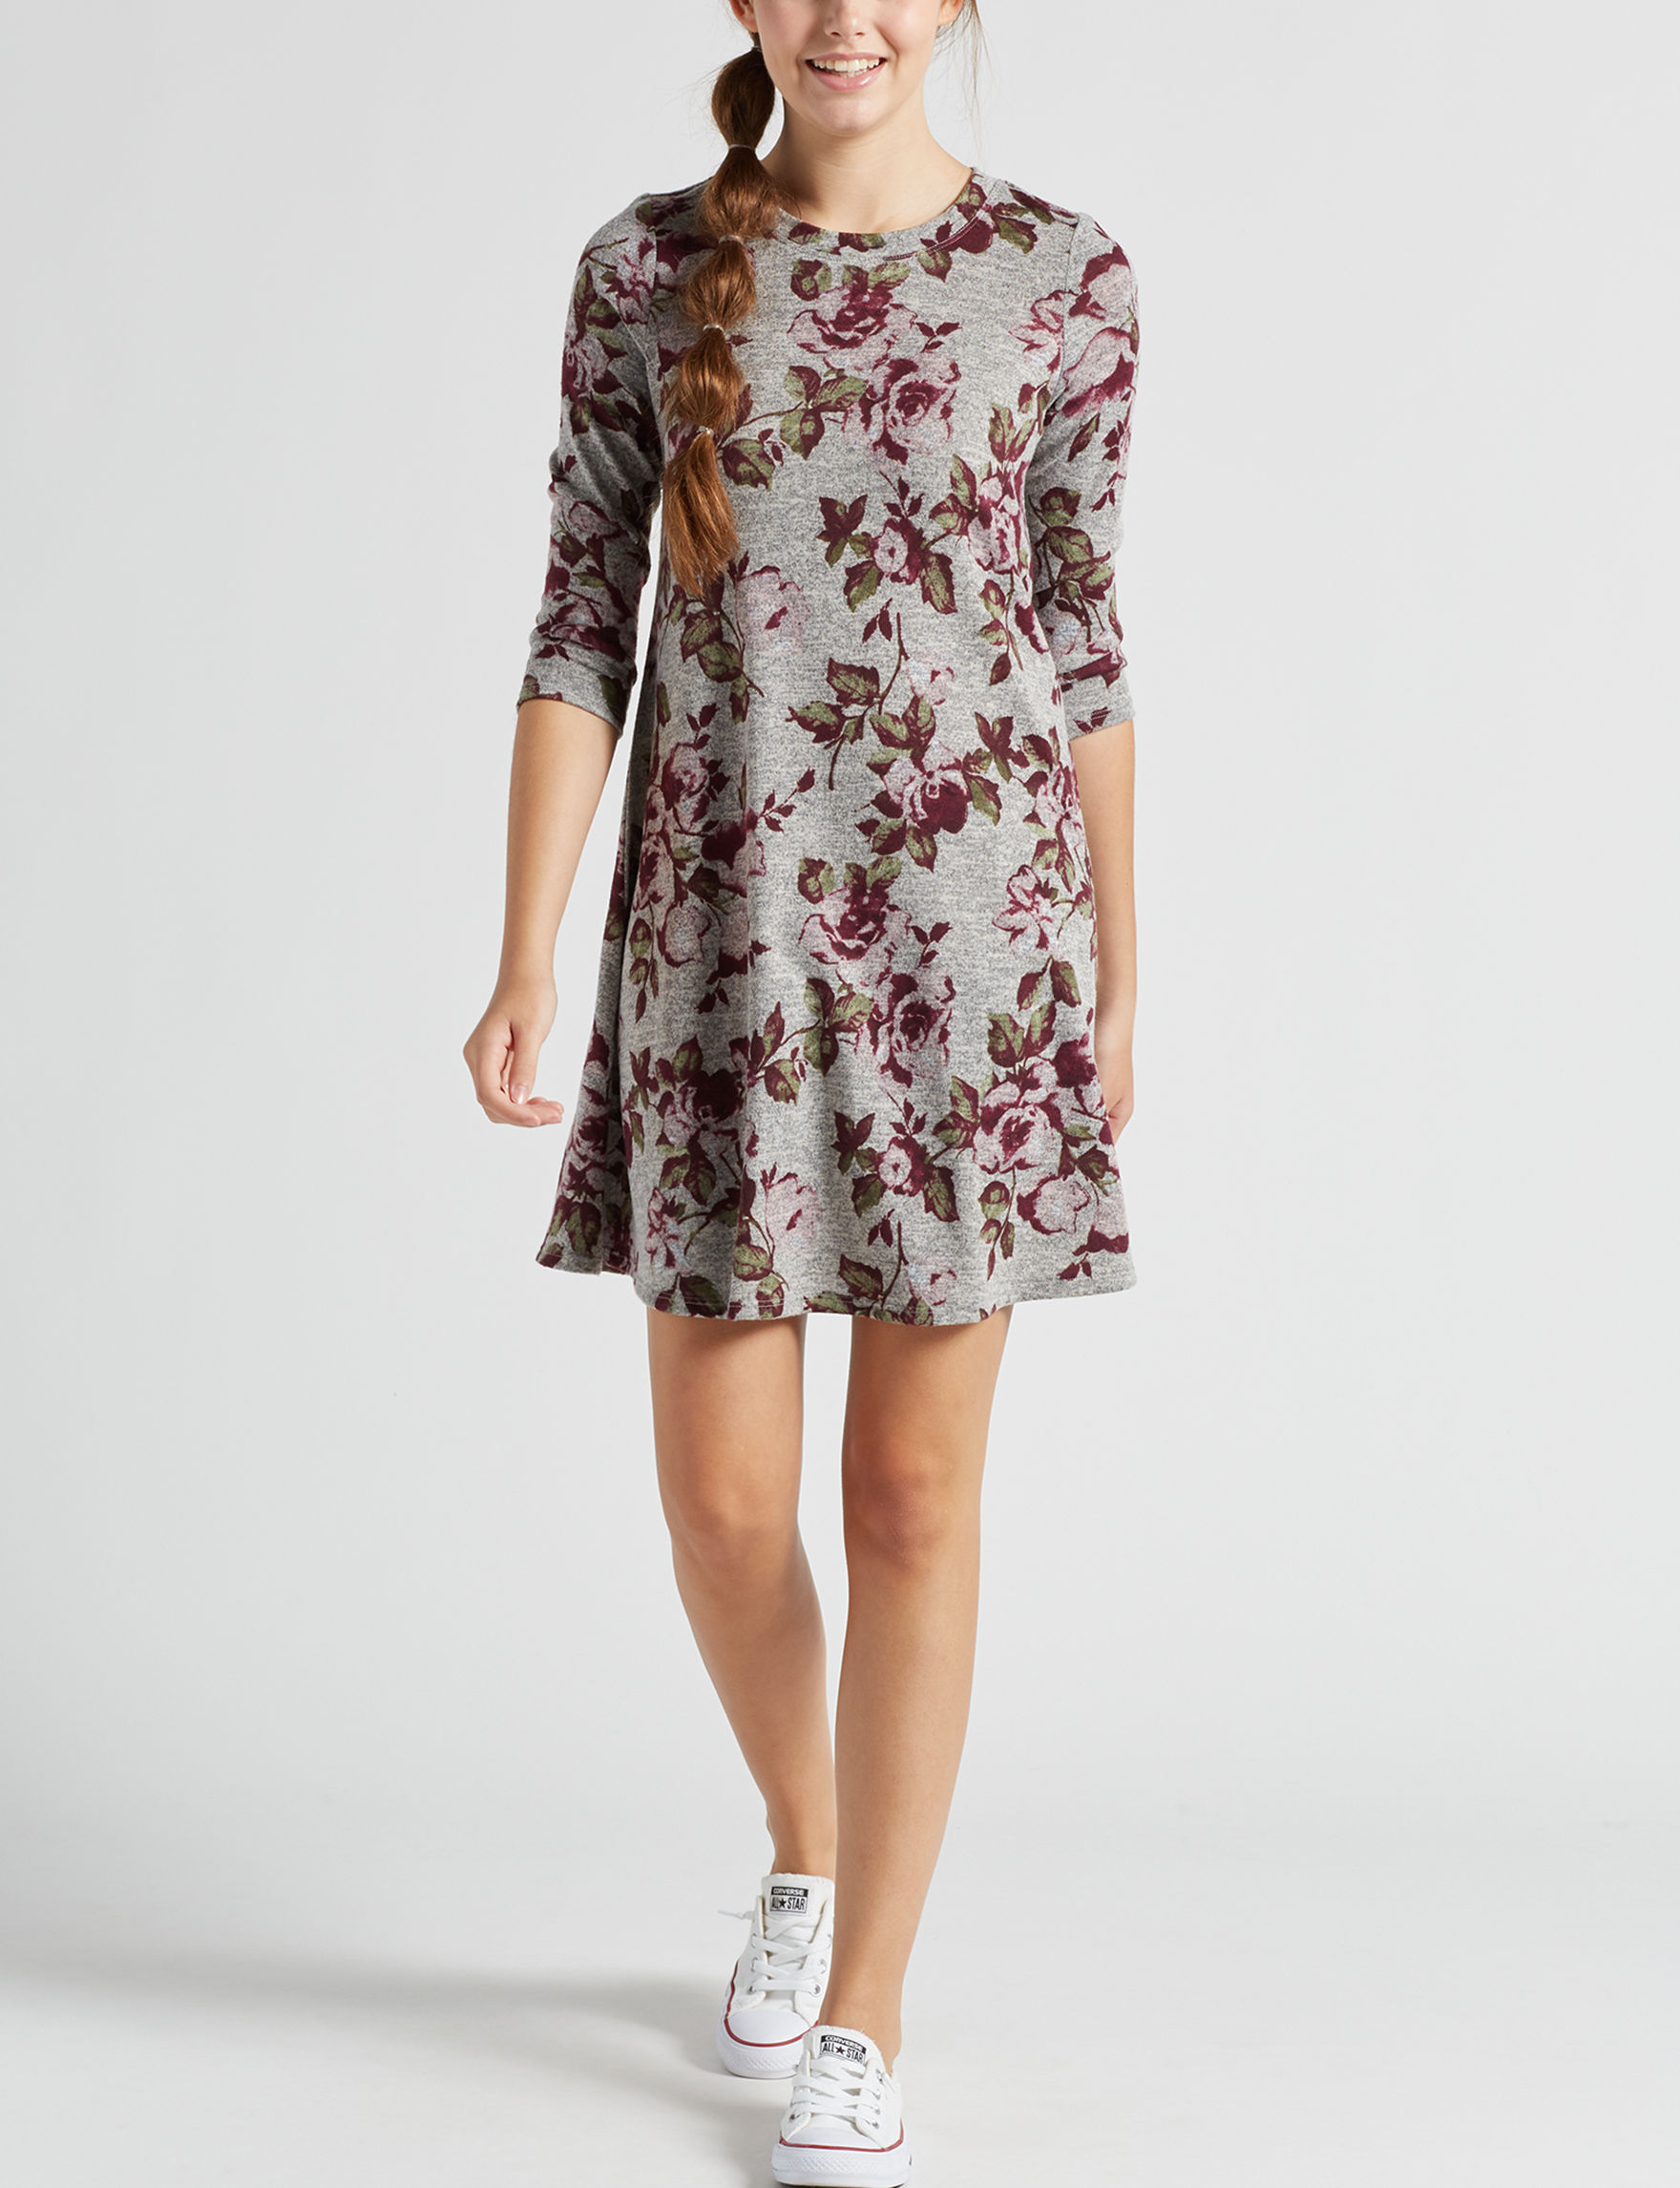 A. Byer Grey Floral Everyday & Casual A-line Dresses